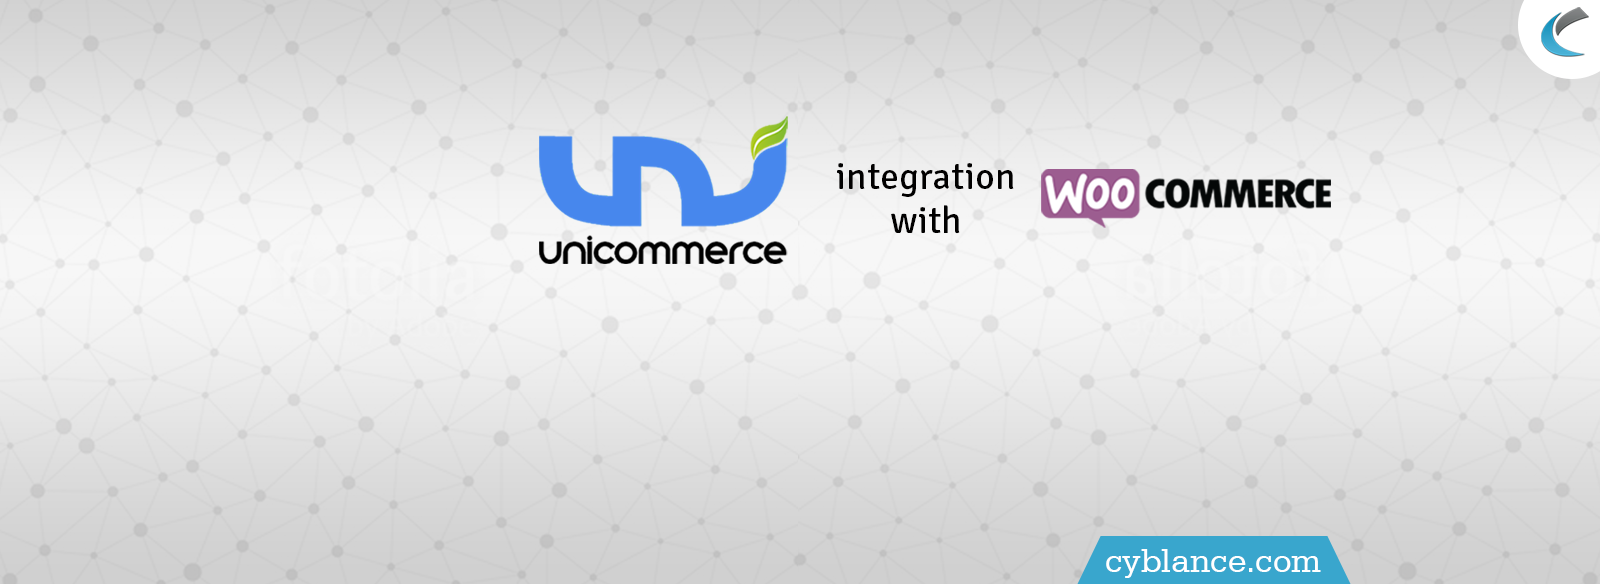 Woocommerce integration with Unicommerce